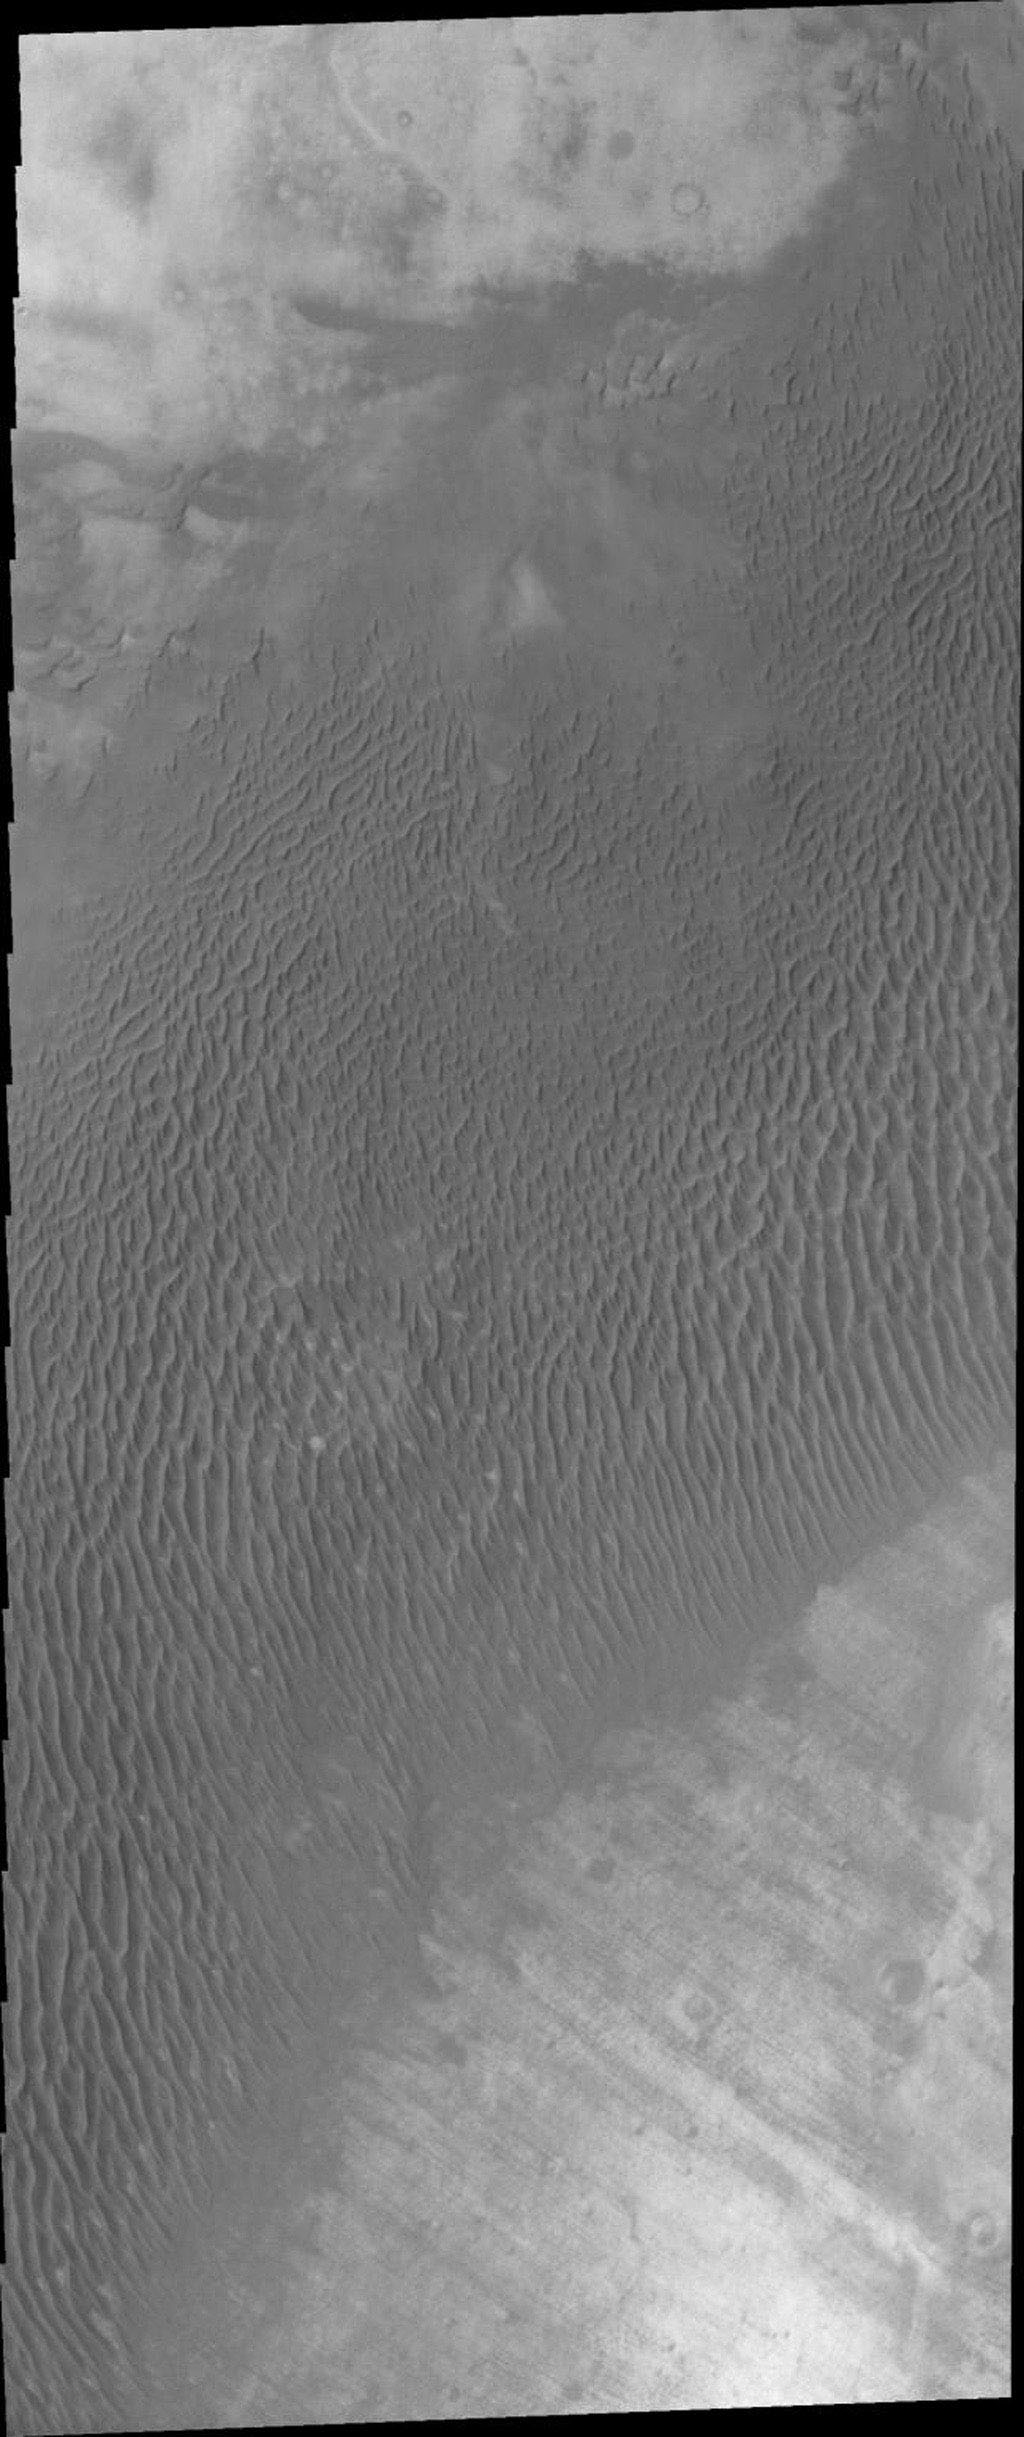 This image from NASA's Mars Odyssey shows a dune field located on the plains of Terra Cimmeria on Mars.